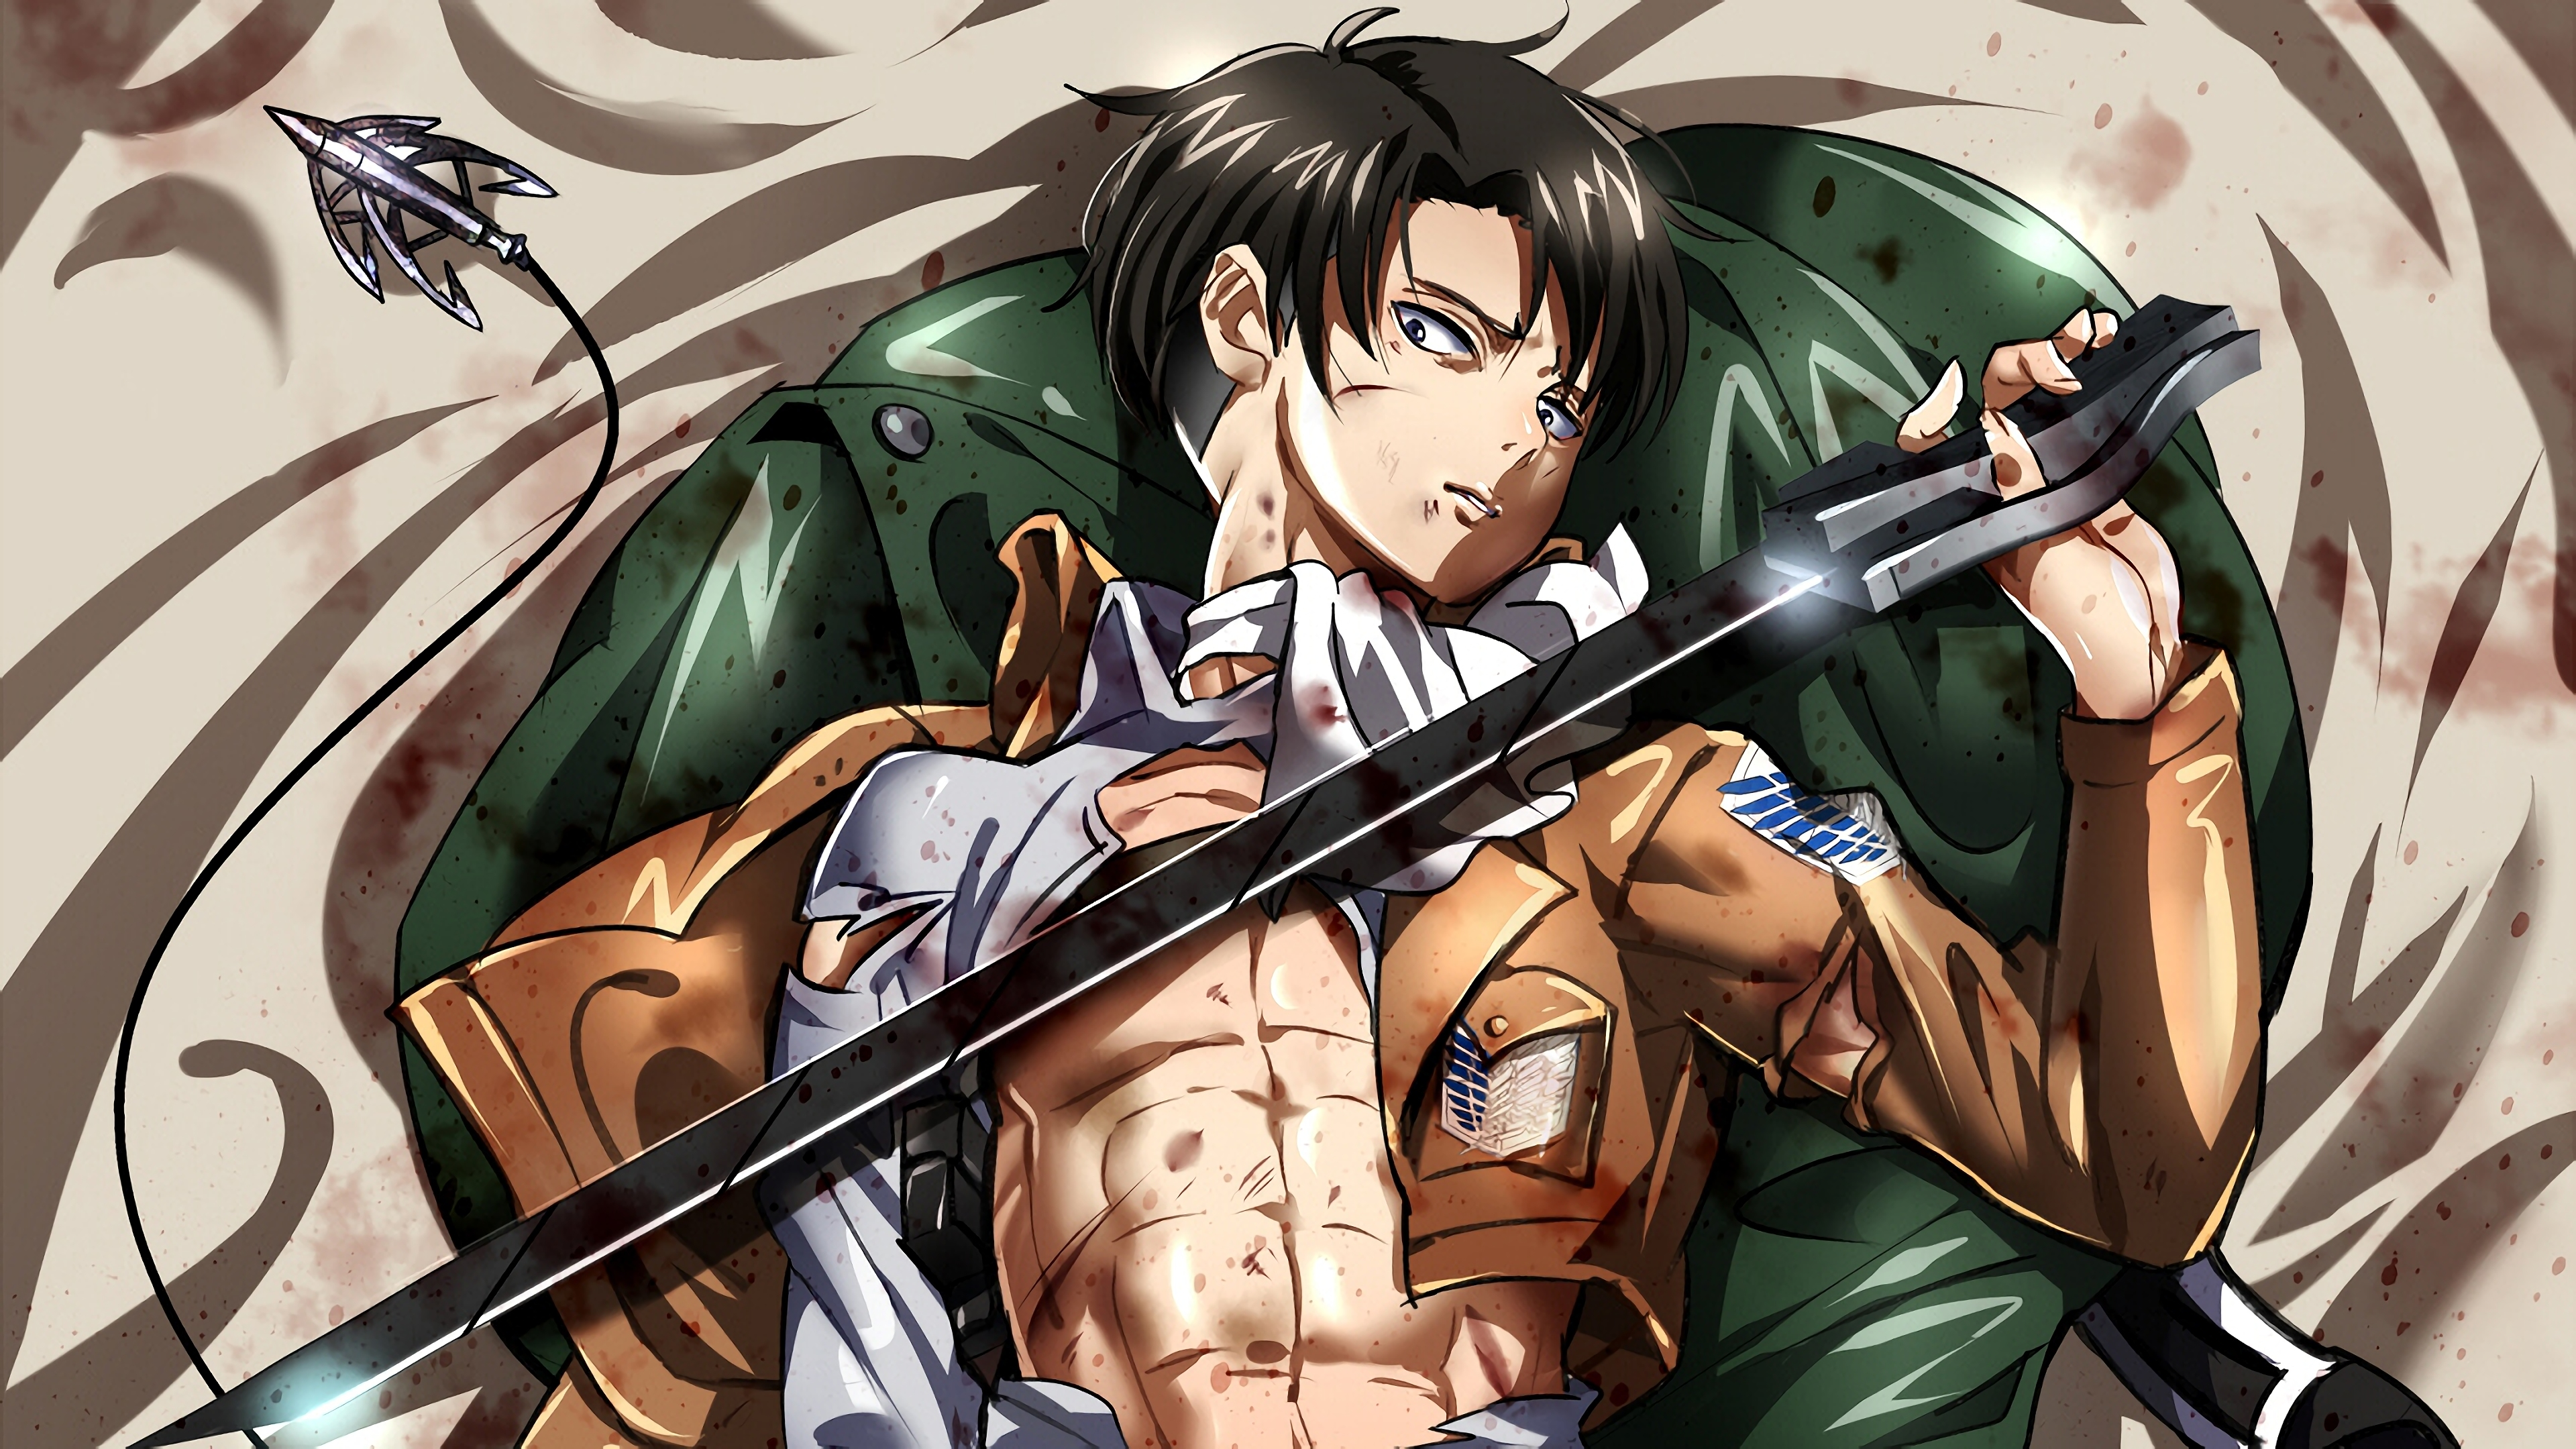 Attack on titans 1080p, 2k, 4k, 5k hd wallpapers free download, these wallpapers are free. Attack On Titan 4k Ultra HD Wallpaper | Background Image ...